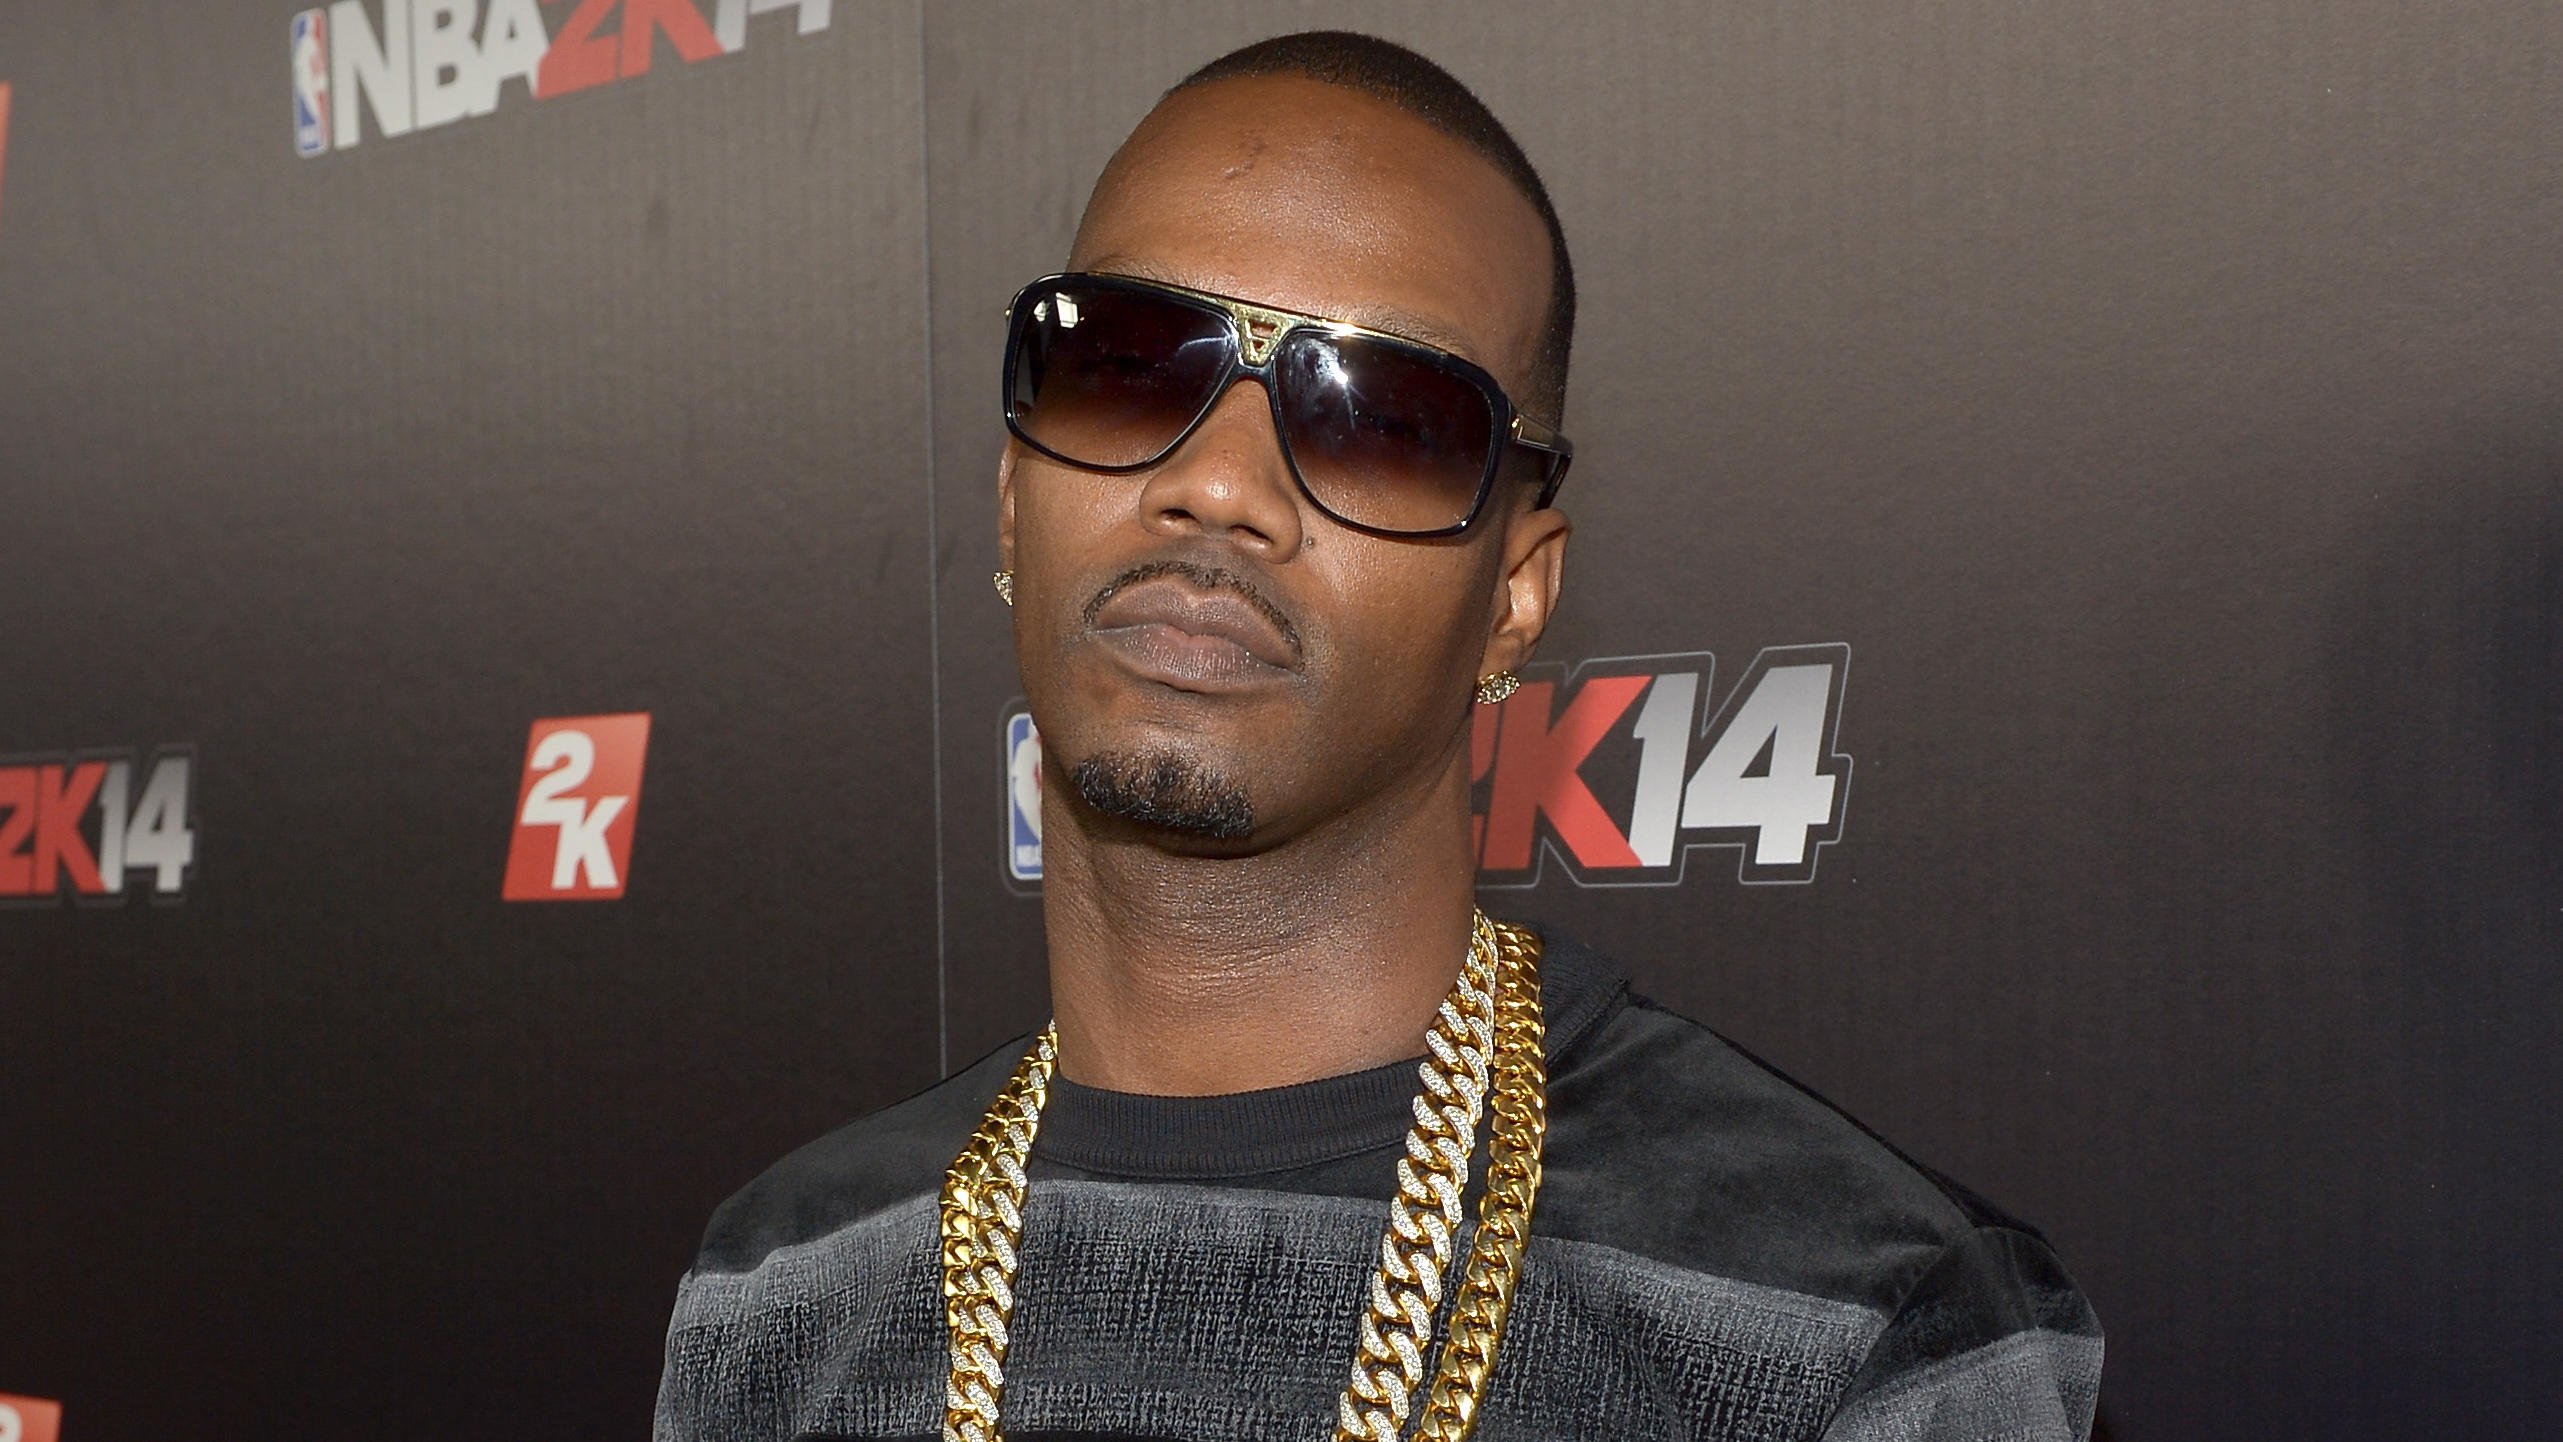 Juicy J Flood Watch Ft Offset MP3 Download